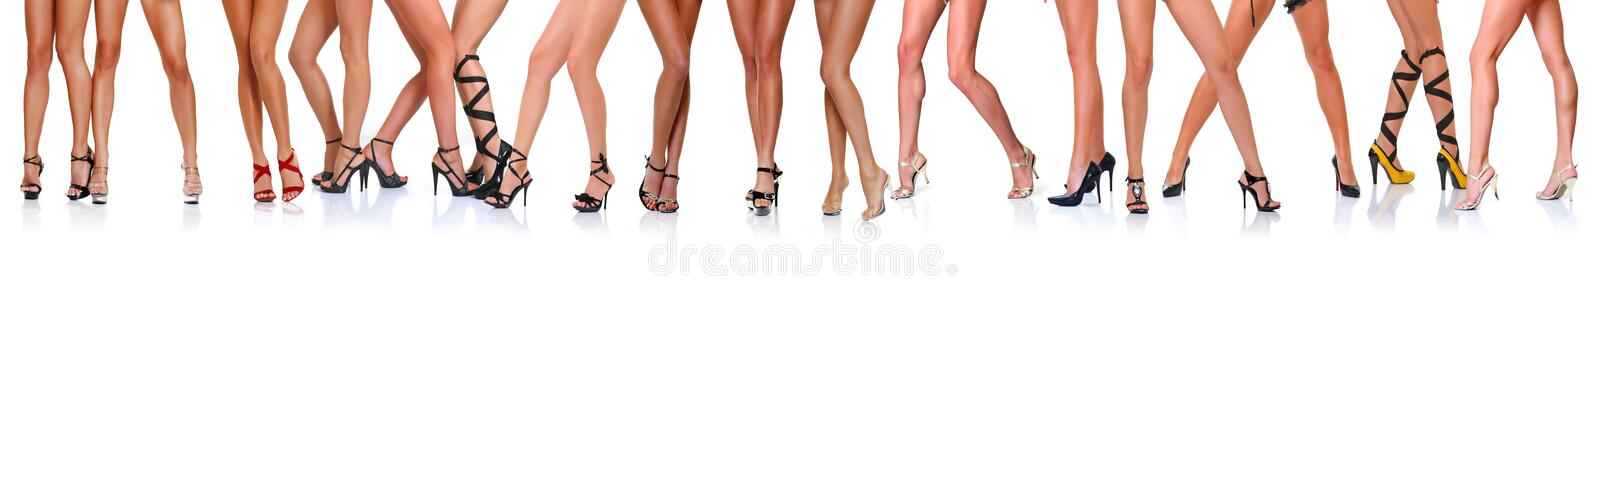 Legs royalty free stock photo